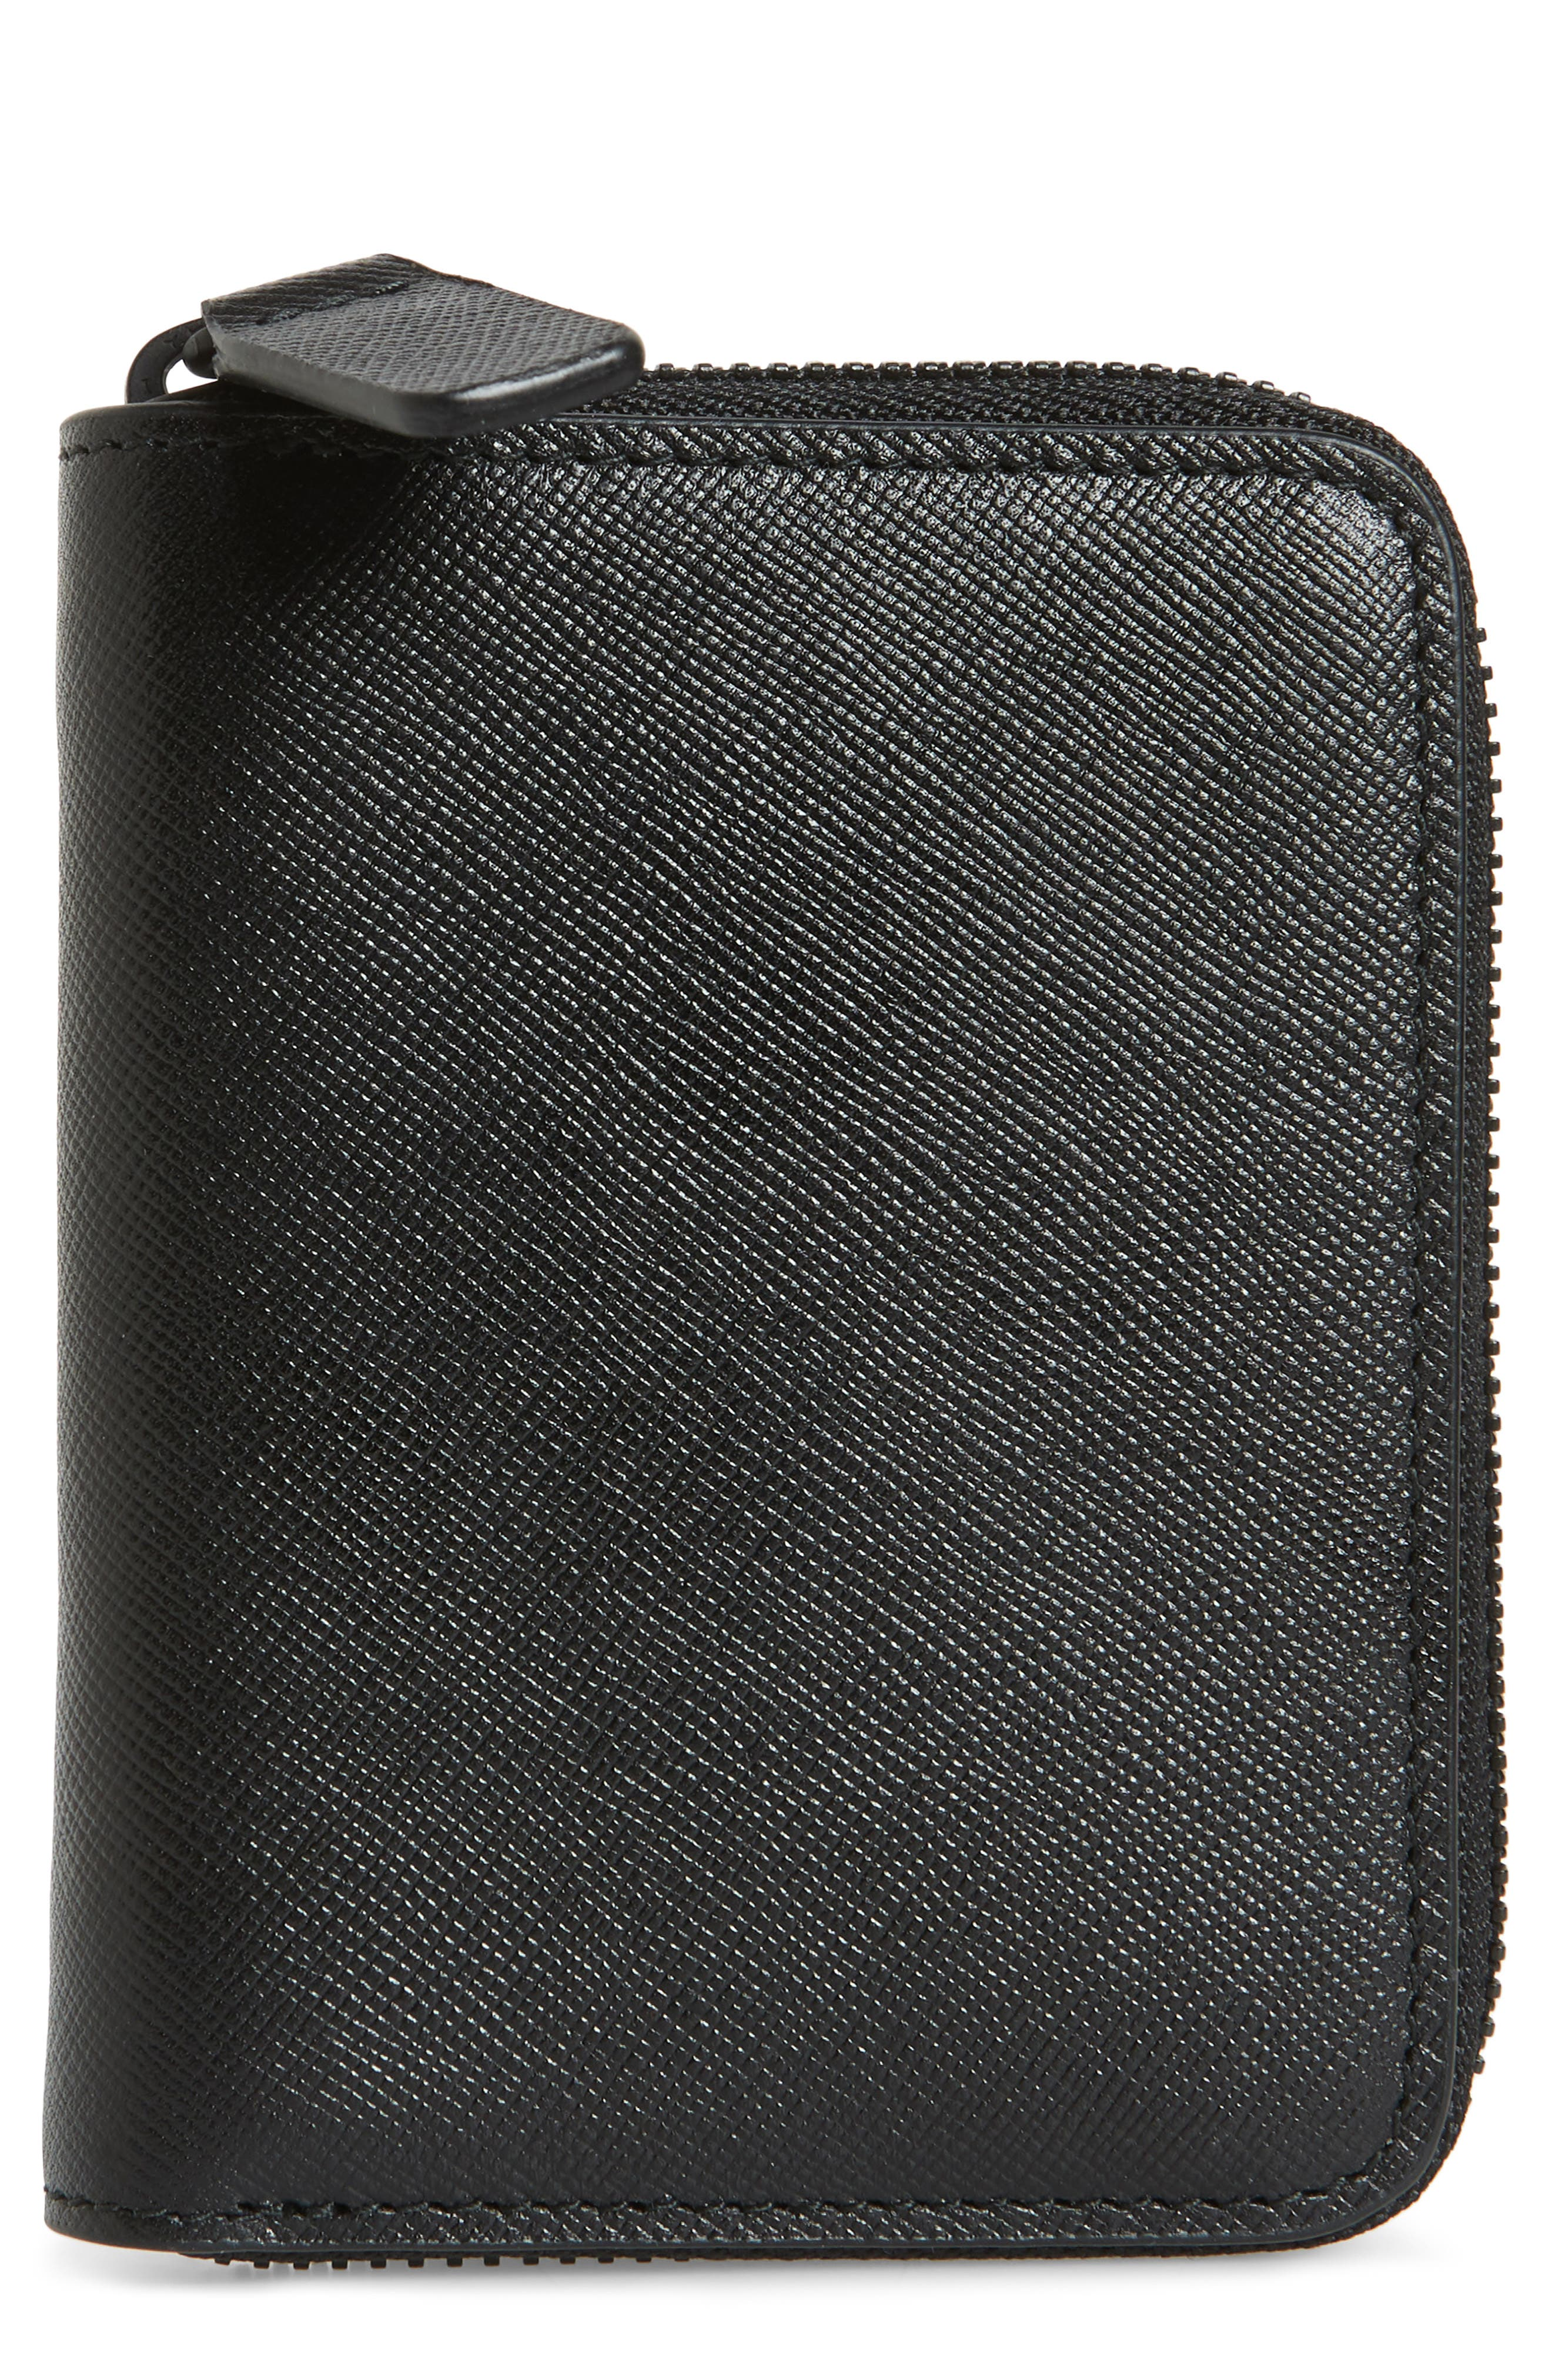 COMMON PROJECTS Saffiano Zip Coin Case, Main, color, 001